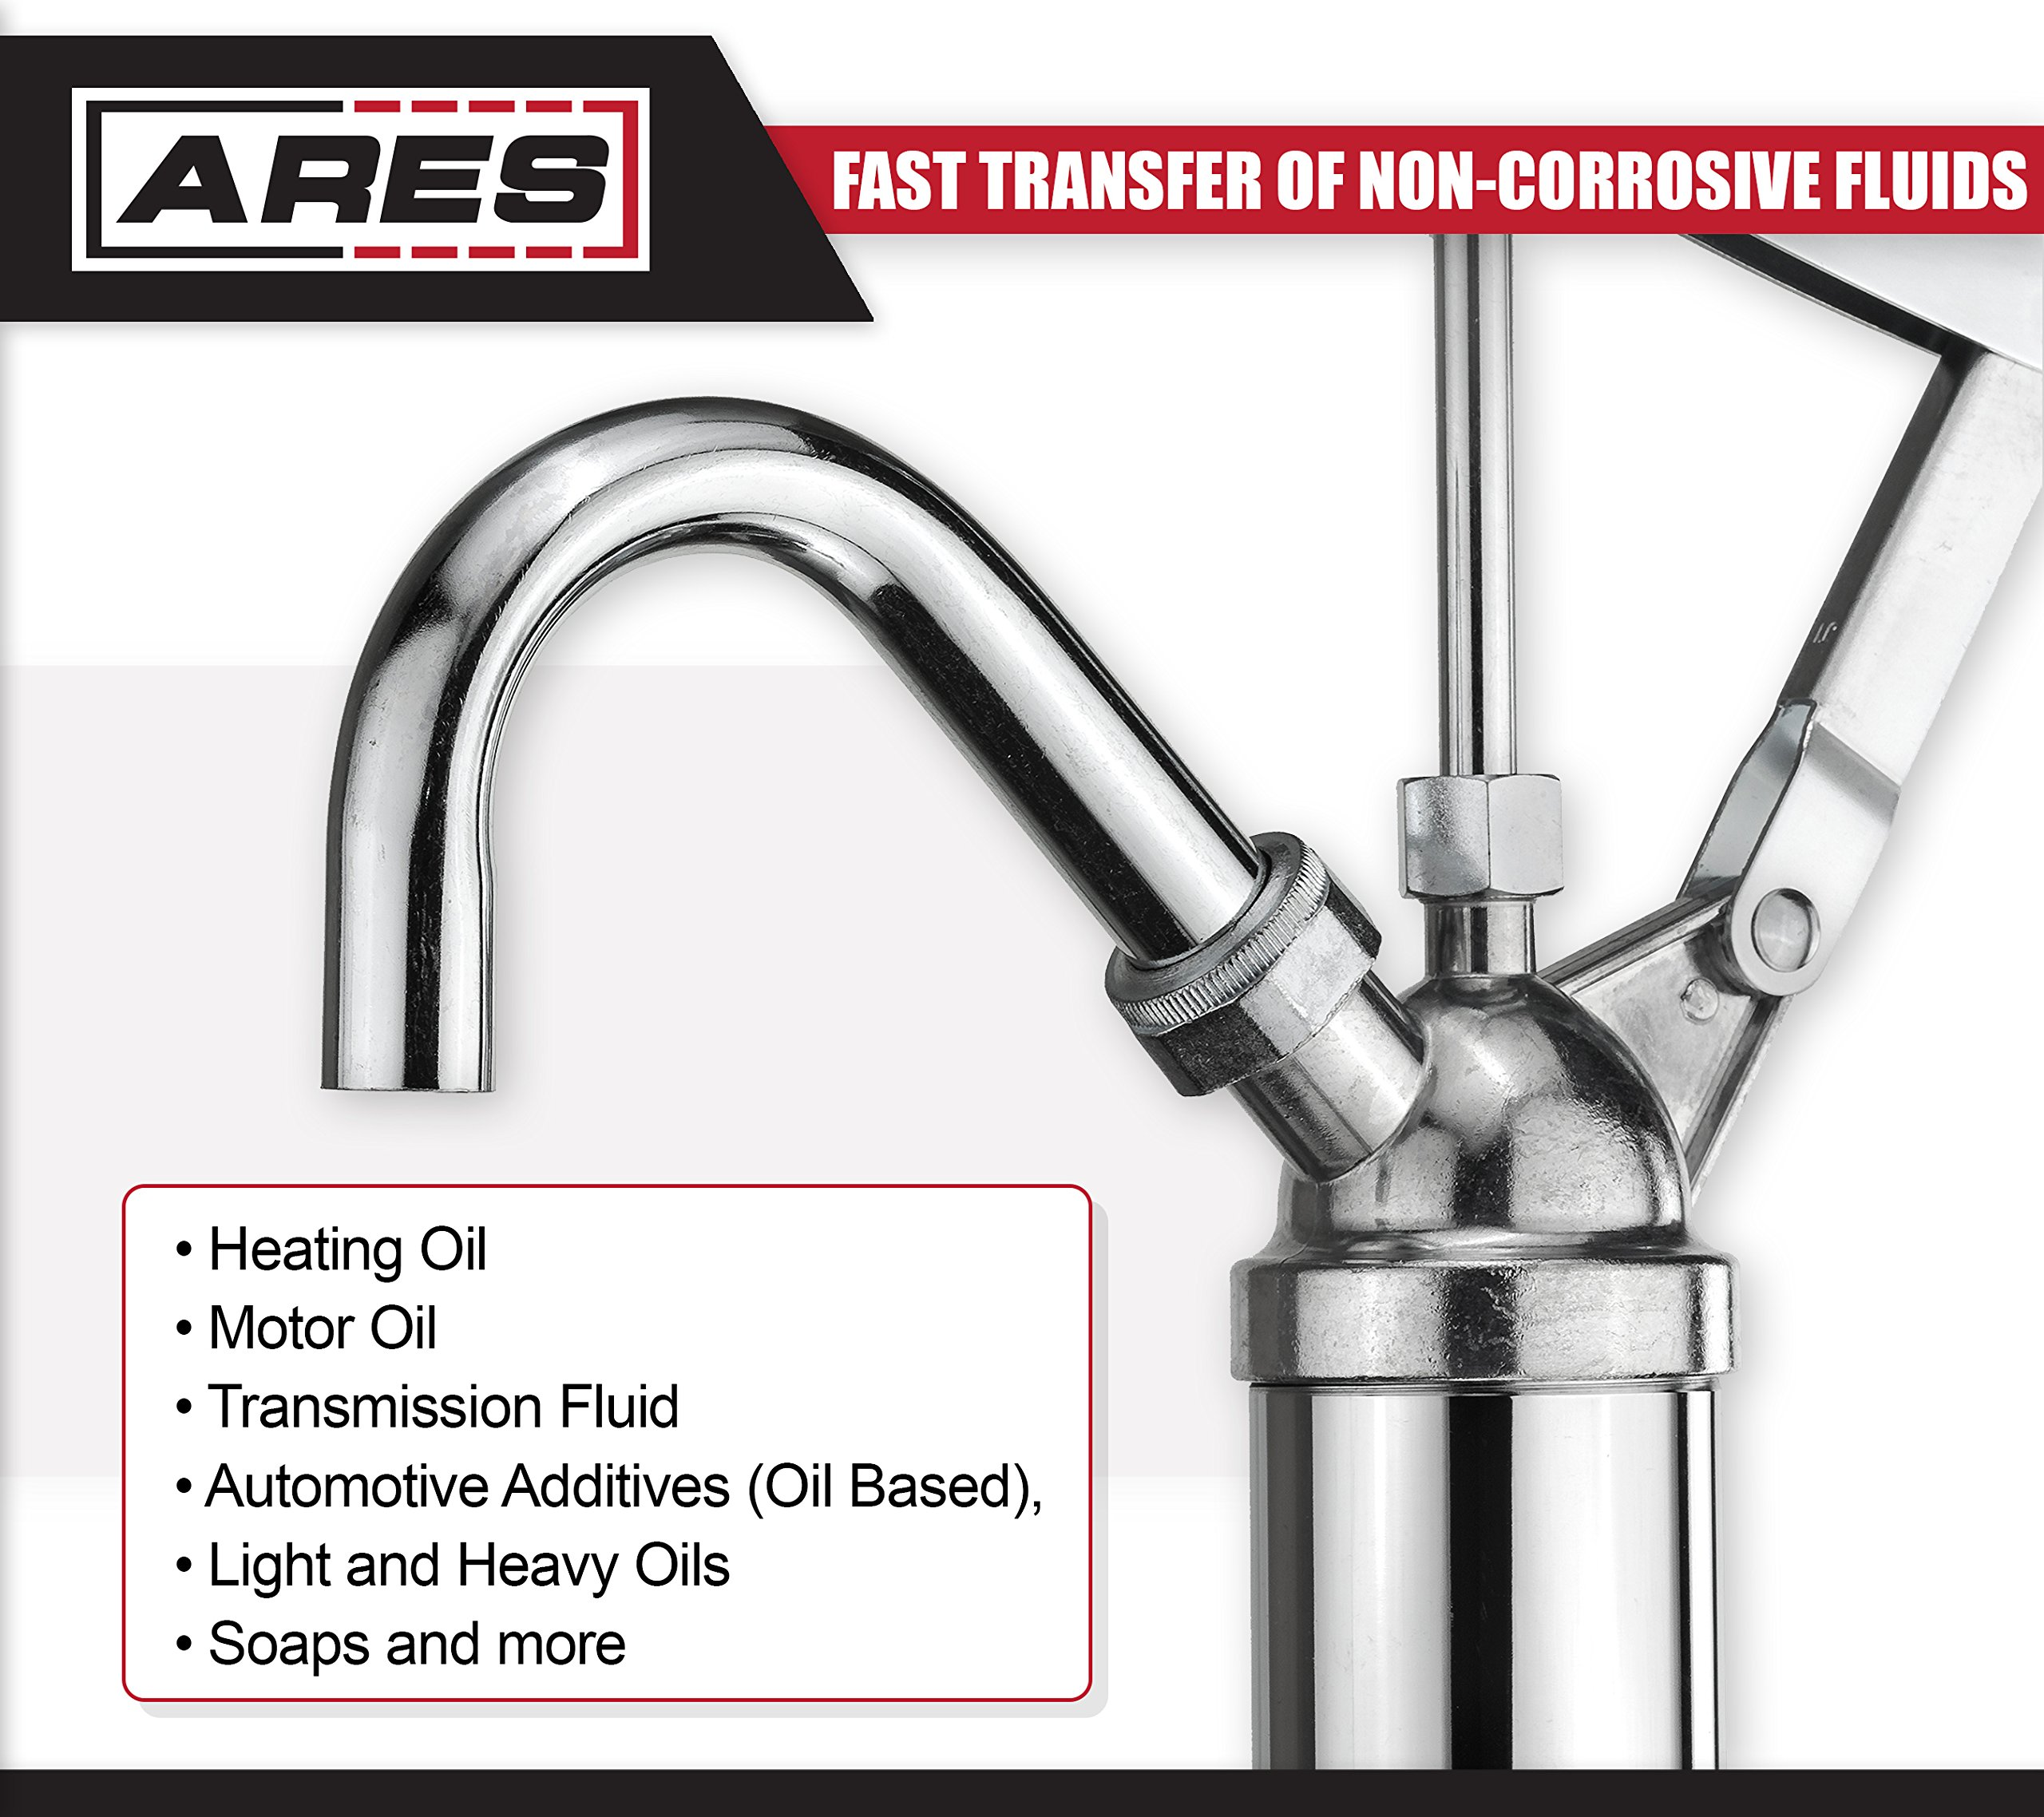 ARES 71038 | Oil Barrel Pump | 2-Piece Telescoping Suction Tube Fits 15-55 Gallon Drums | Designed to Deliver Base Oil, Transmission Oil and Heavier Fluids | Removable Spout Fits Standard Garden Hoses by ARES (Image #5)